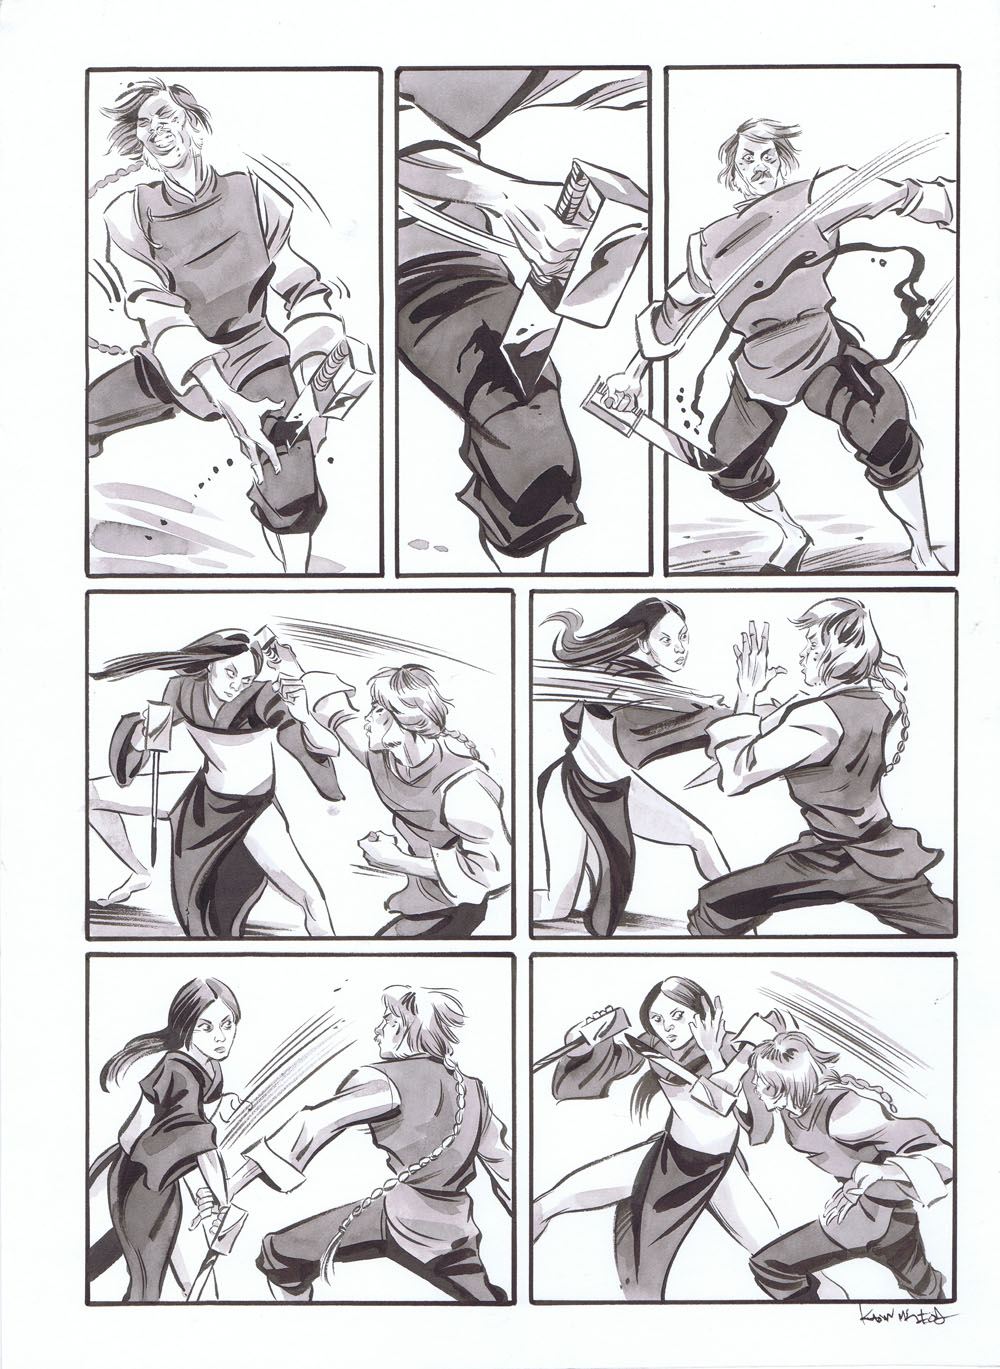 Infinite Kung Fu page 407